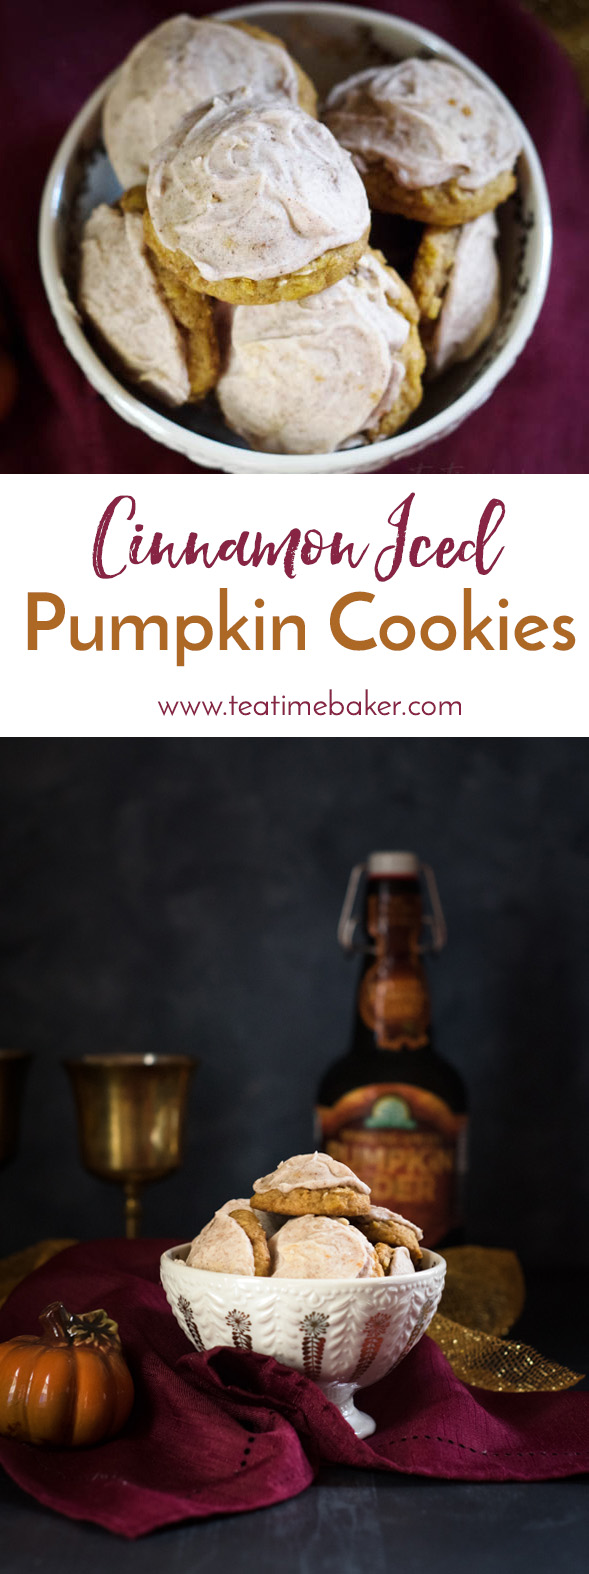 Soft and buttery pumpkin cookies are topped with cinnamon icing for a burst of fall flavor. This is a cookie you don't want to miss! | Pumpkin Cookie recipe | The Teatime Baker | Holiday cookies | Favorite fall cookies #pumpkincookierecipe